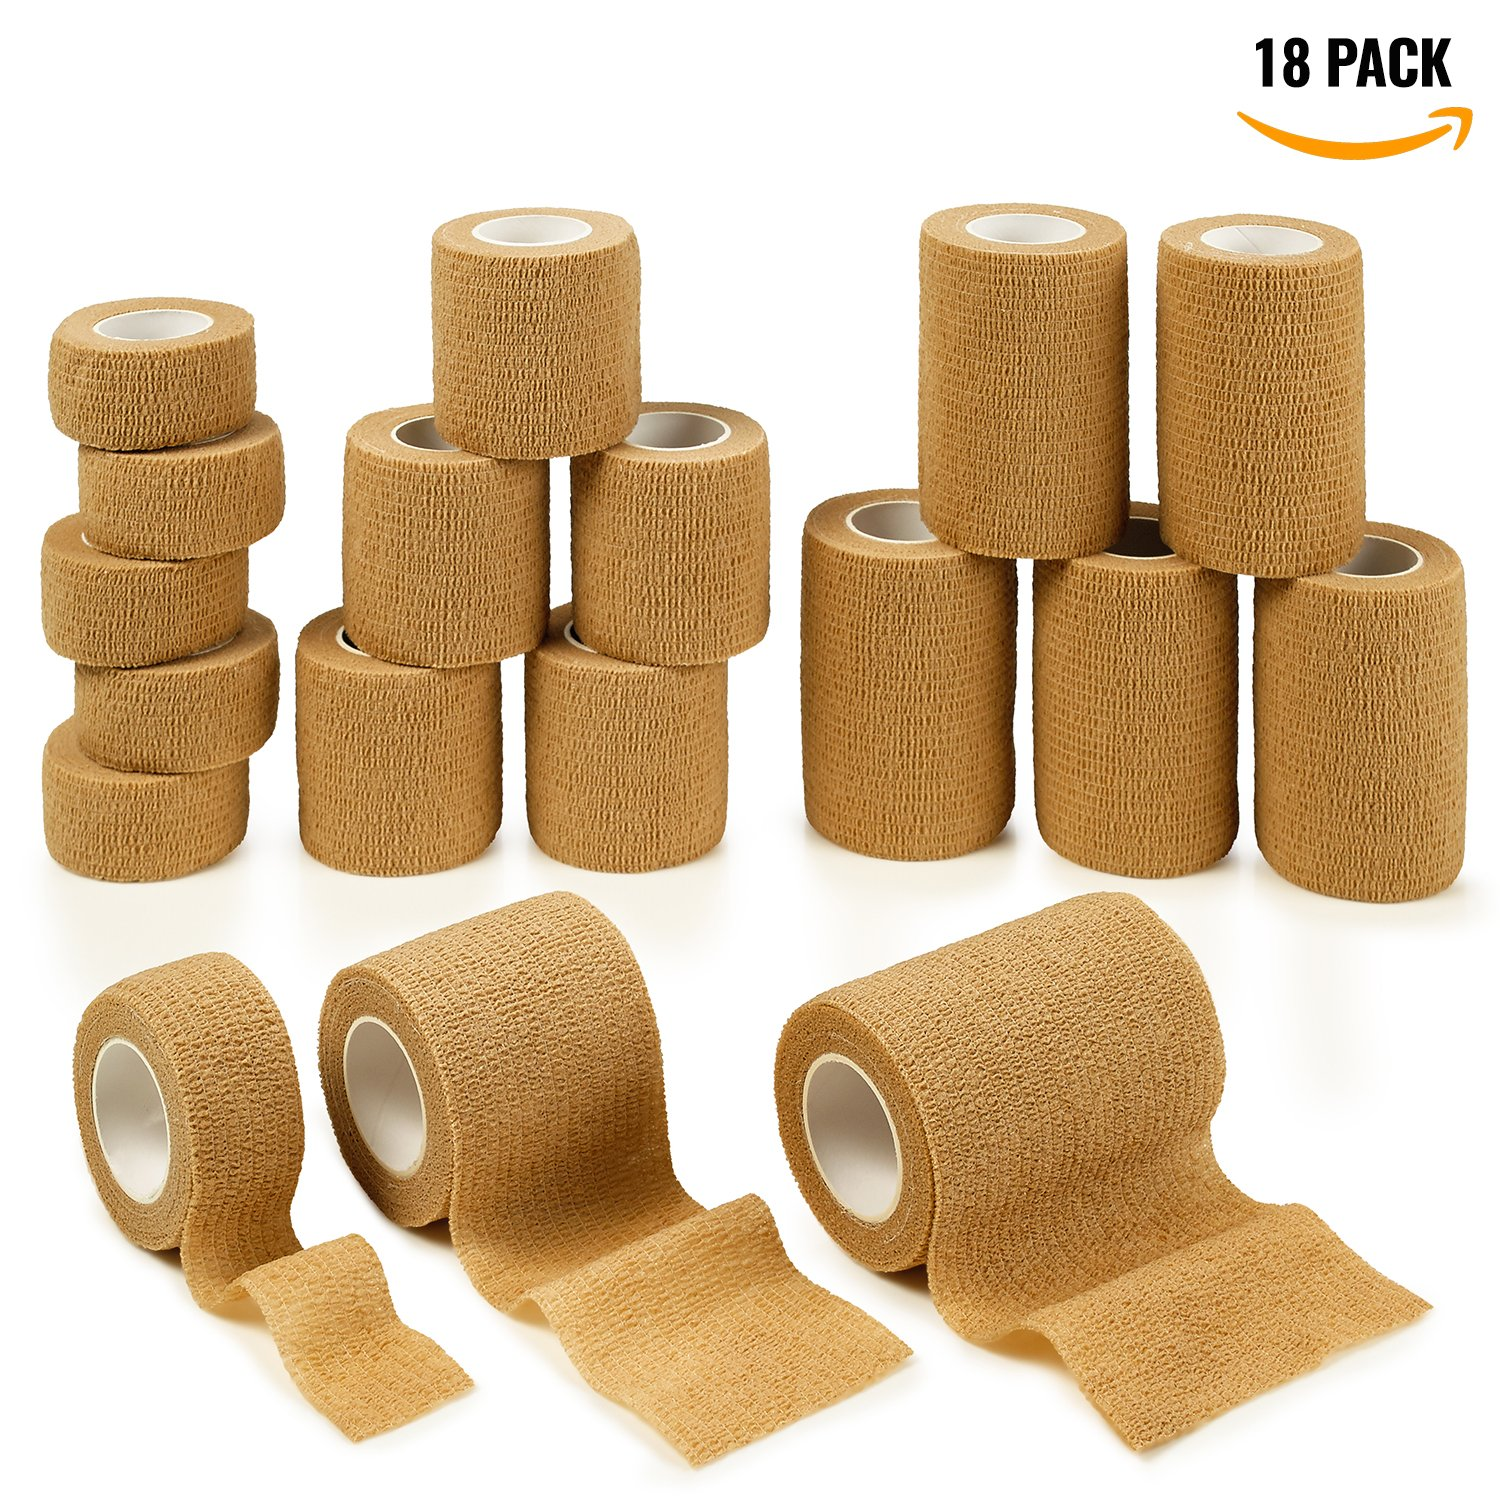 MEDca Tape Wrap, Self Adherent Rap Tape, Adhering Stick Bandage, Self Grip Roll 1 Inche 2 inch and 3 inch X 5 Yards 6 of Each Size Total of 18 Rolls Skin Color